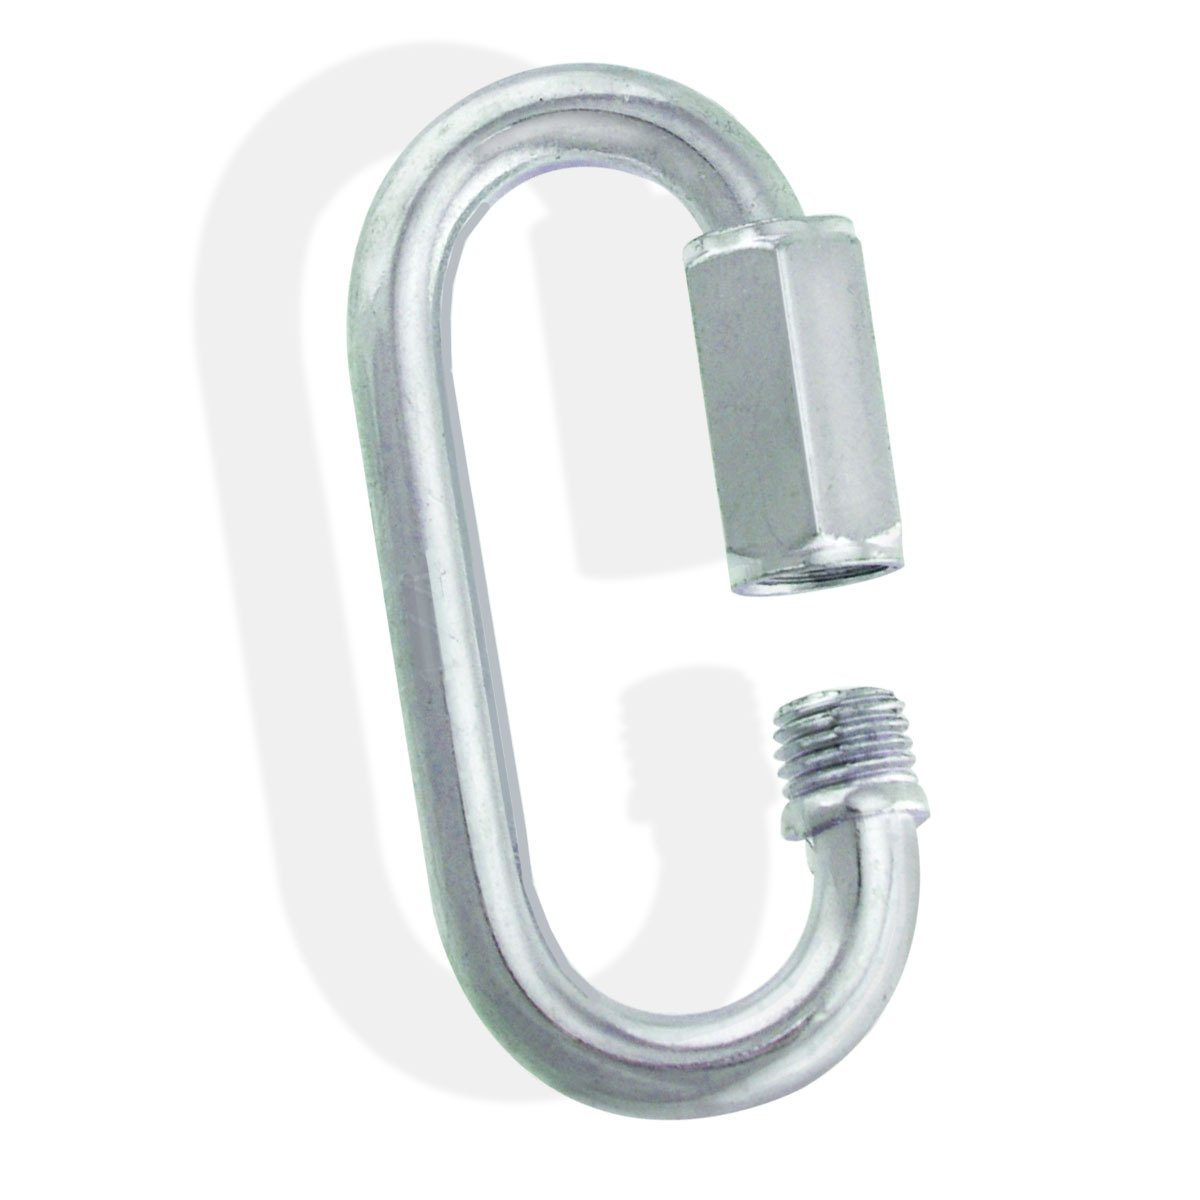 Zinc Galvanized Steel Quick Links - 1/8'' to 5/8'' - 1-1/2'' to 6'' - Chain, Ropes Link size: 1/4 x 2-1/2'